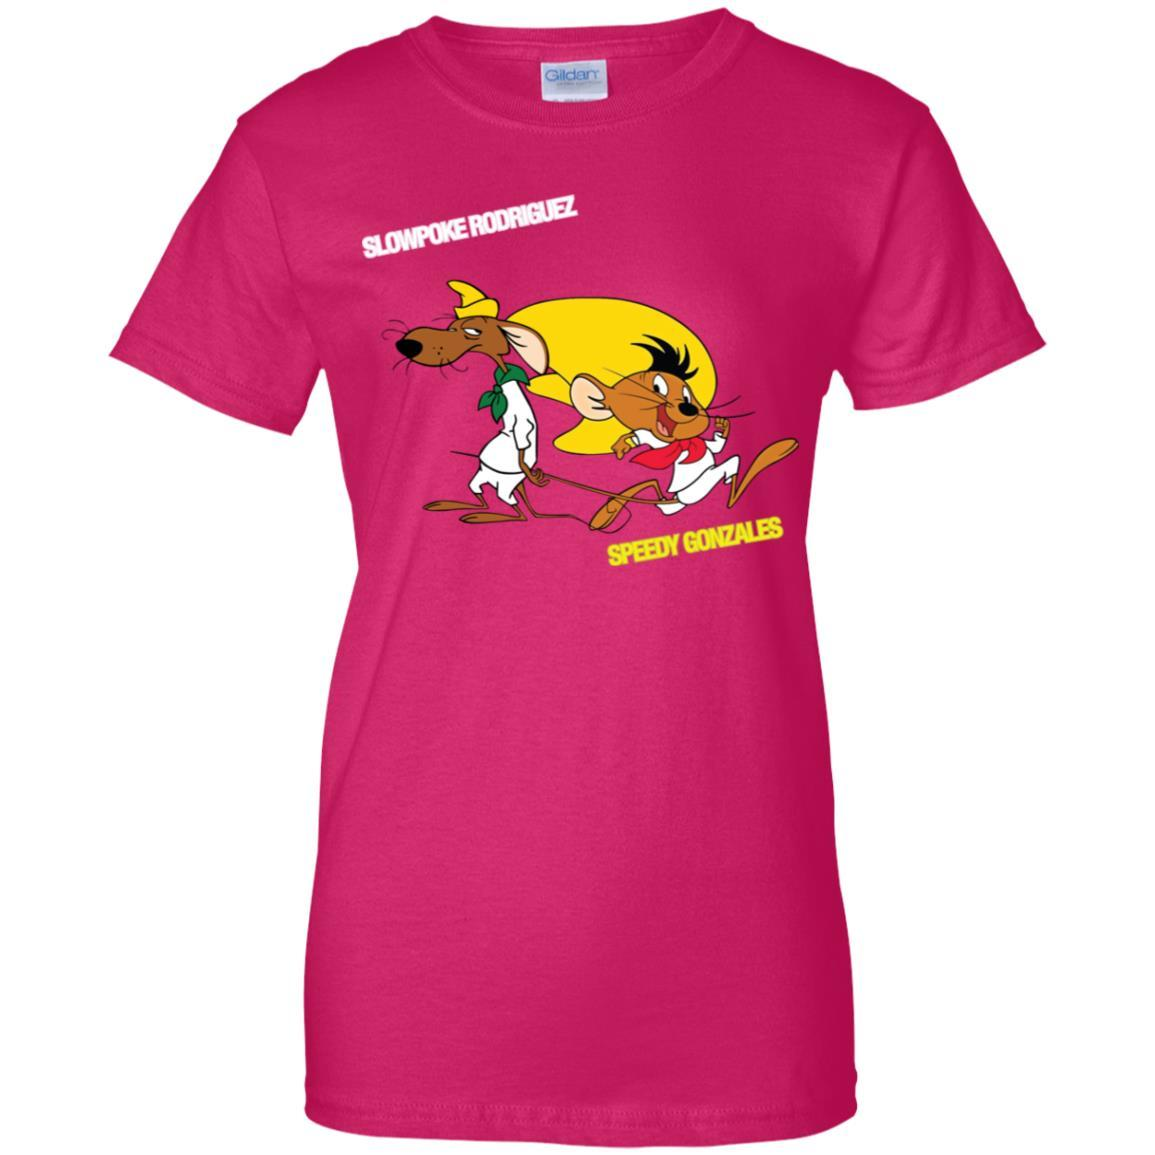 Slowpoke Rodriguez Speedy Gonzalez Funny Vintage Cartoon Tee T-Shirt G200L Gildan Ladies' 100% Cotton T-Shirt / Heliconia / 3XL